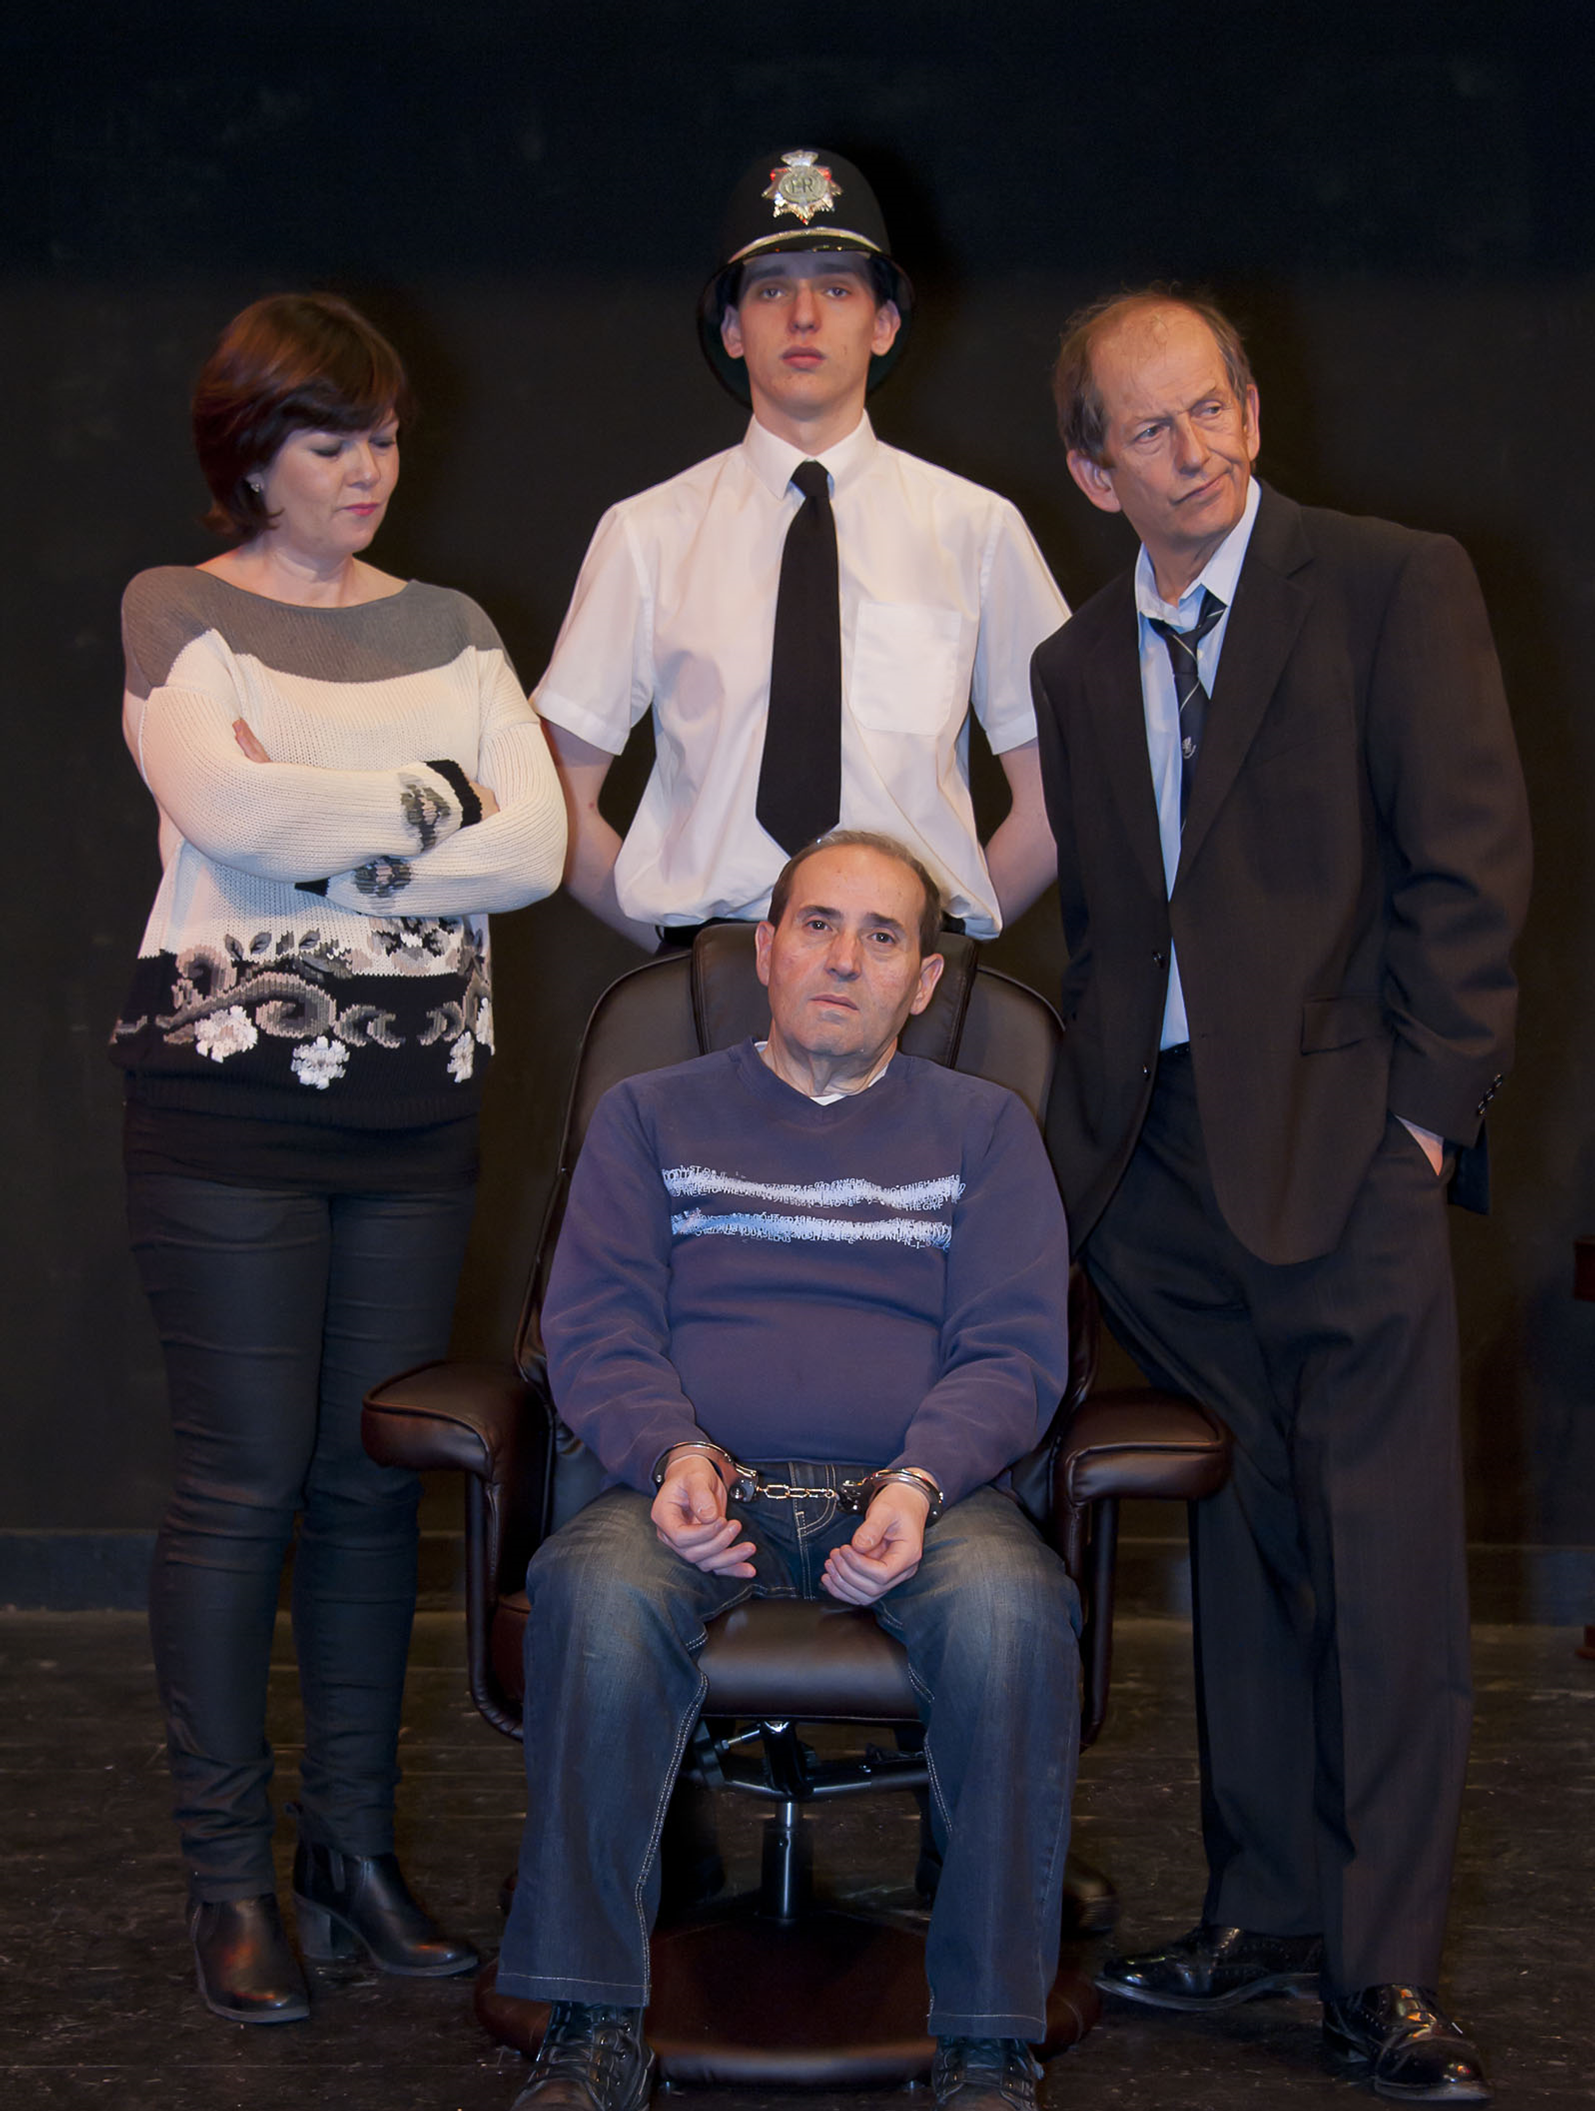 Murder mystery case comes to the stage